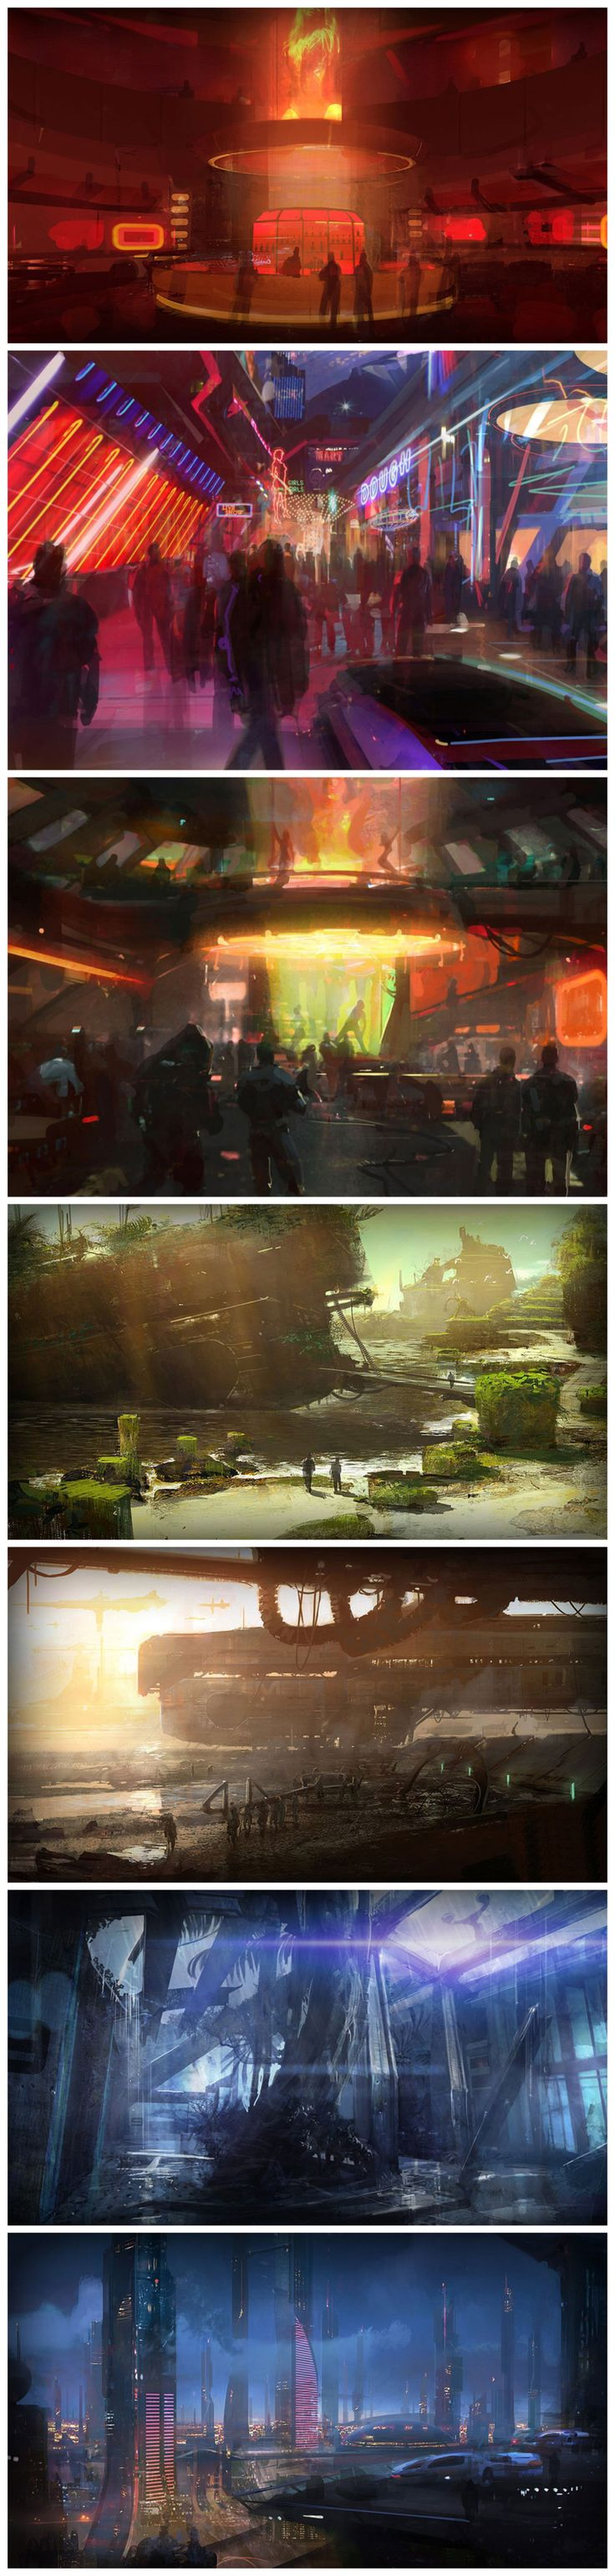 Mass Effect 2 - Environments. Futuristically gorgeous design.